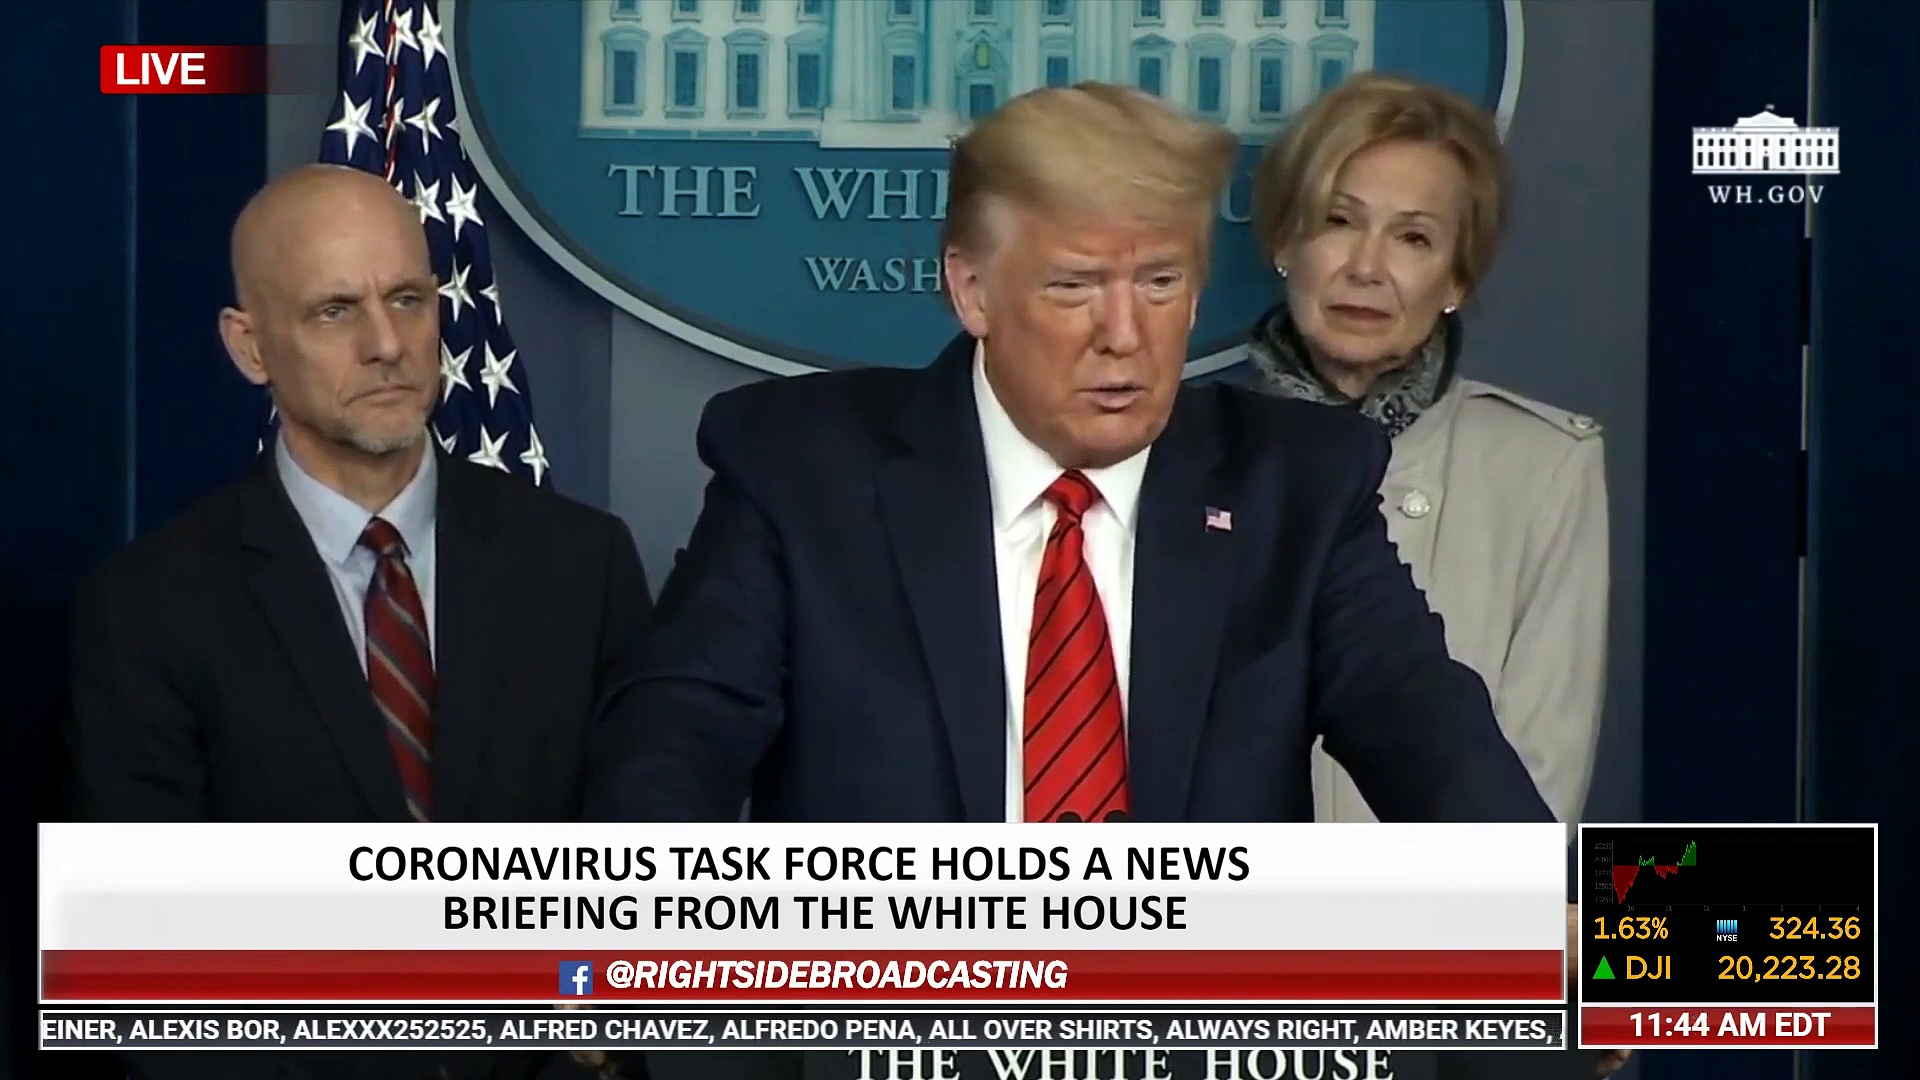 President Trump Announces FDA Approval of Hydroxychloroquine for Treatment of Coronavirus